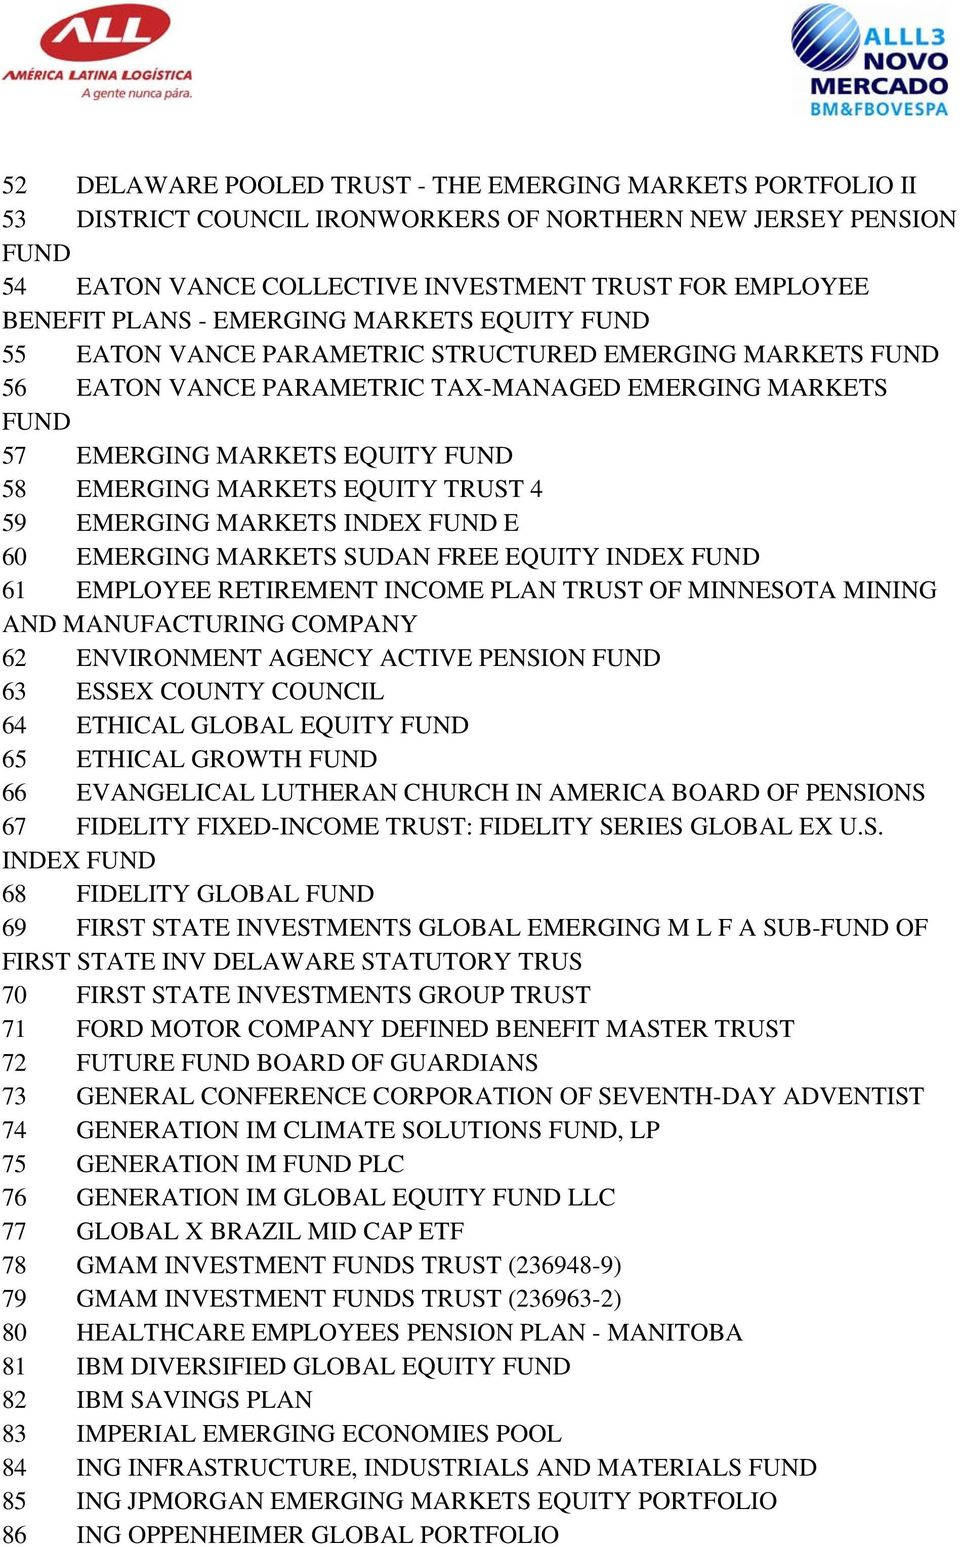 MARKETS EQUITY TRUST 4 59 EMERGING MARKETS INDEX FUND E 60 EMERGING MARKETS SUDAN FREE EQUITY INDEX FUND 61 EMPLOYEE RETIREMENT INCOME PLAN TRUST OF MINNESOTA MINING AND MANUFACTURING COMPANY 62